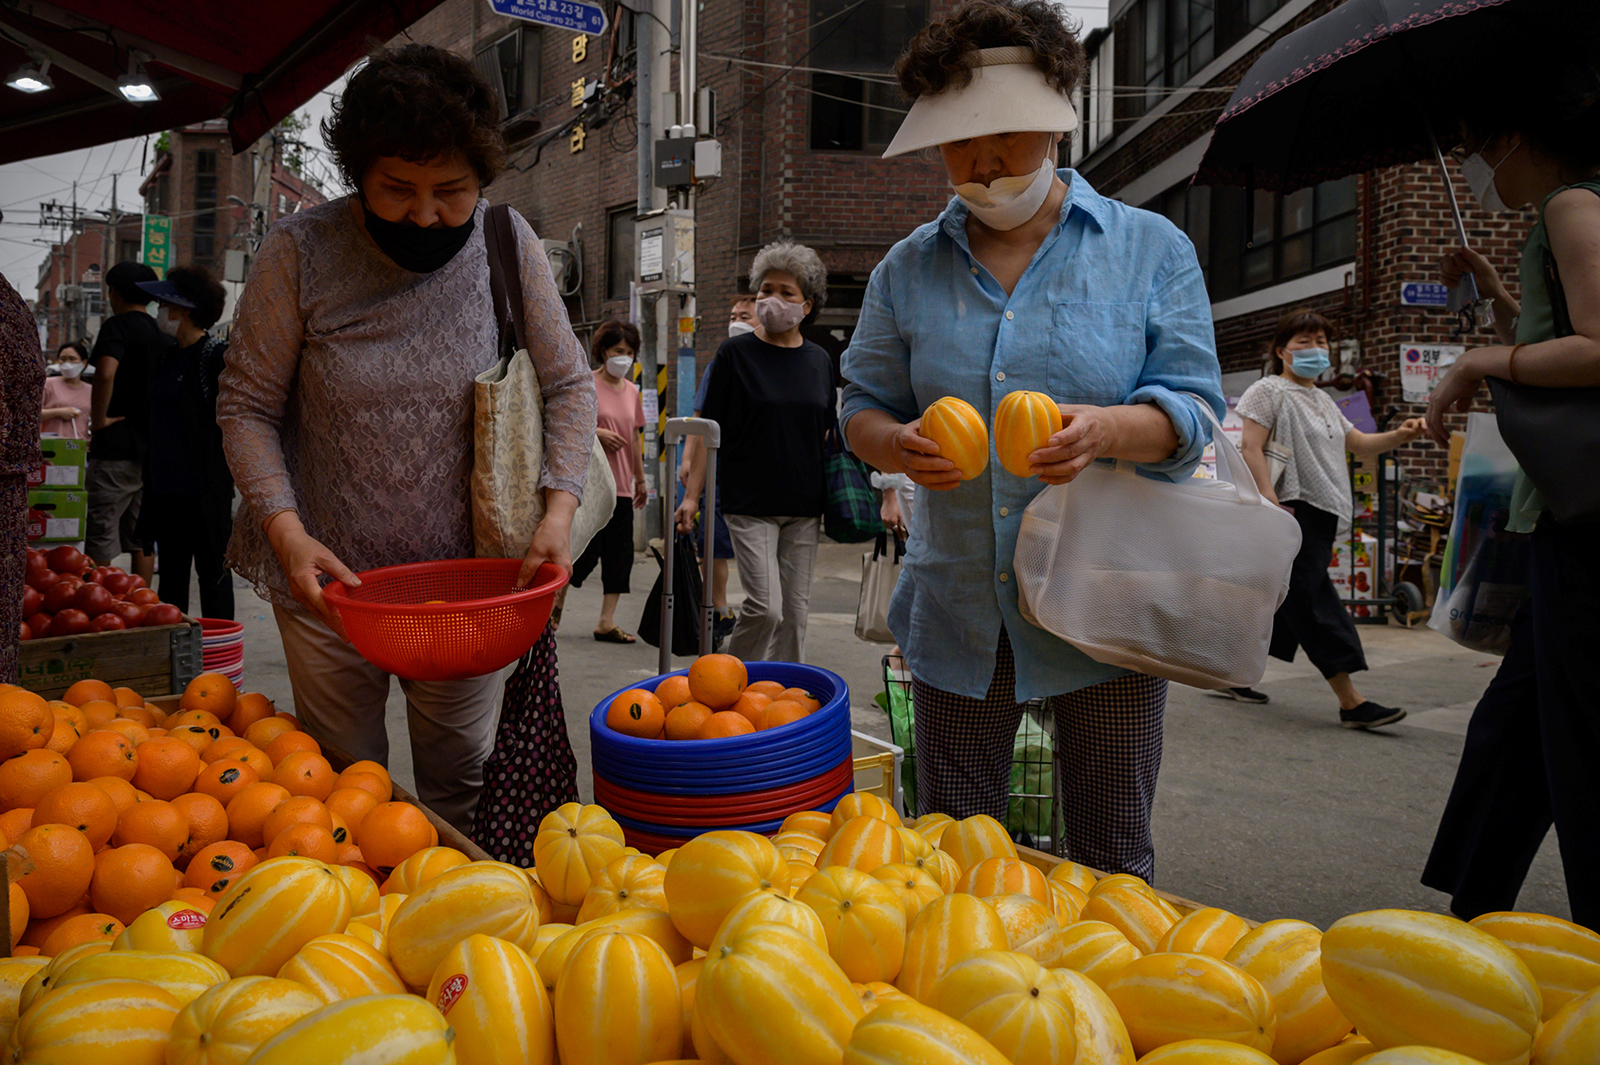 Shoppers walk through a market in Seoul on June 10.